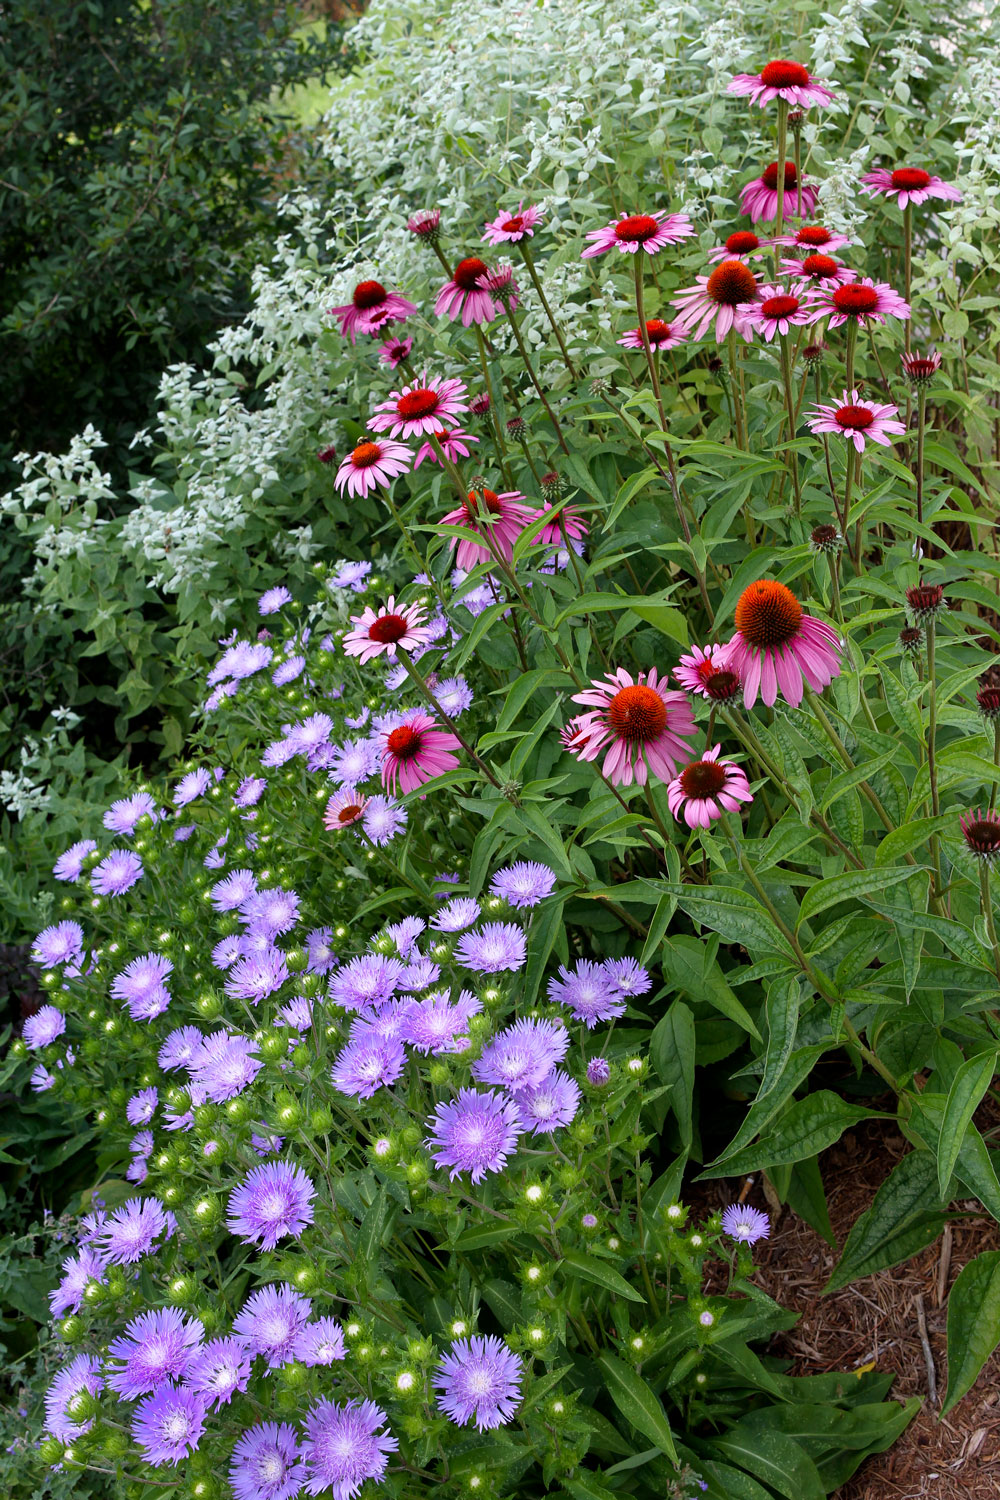 Stoke's aster, coneflower, and mountain mint in the pollinator garden. Photo by Debbie Roos.